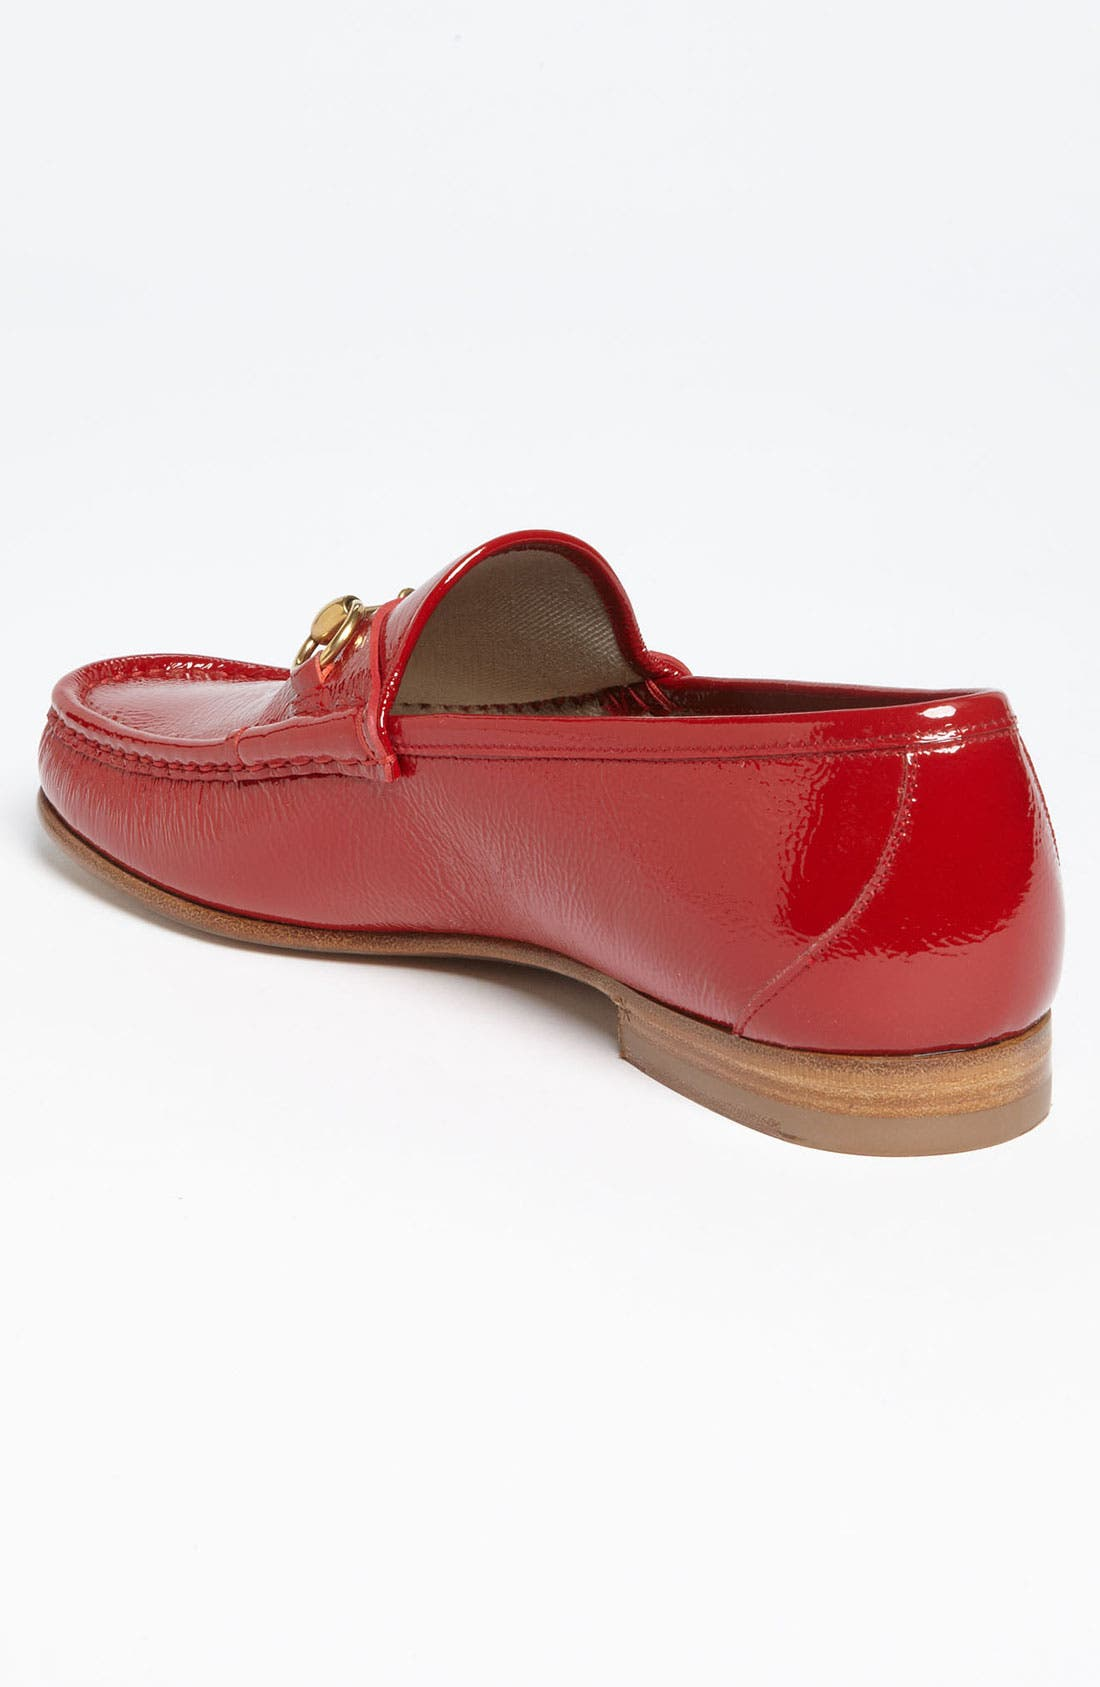 Alternate Image 2  - Gucci 'Roos' Patent Bit Loafer